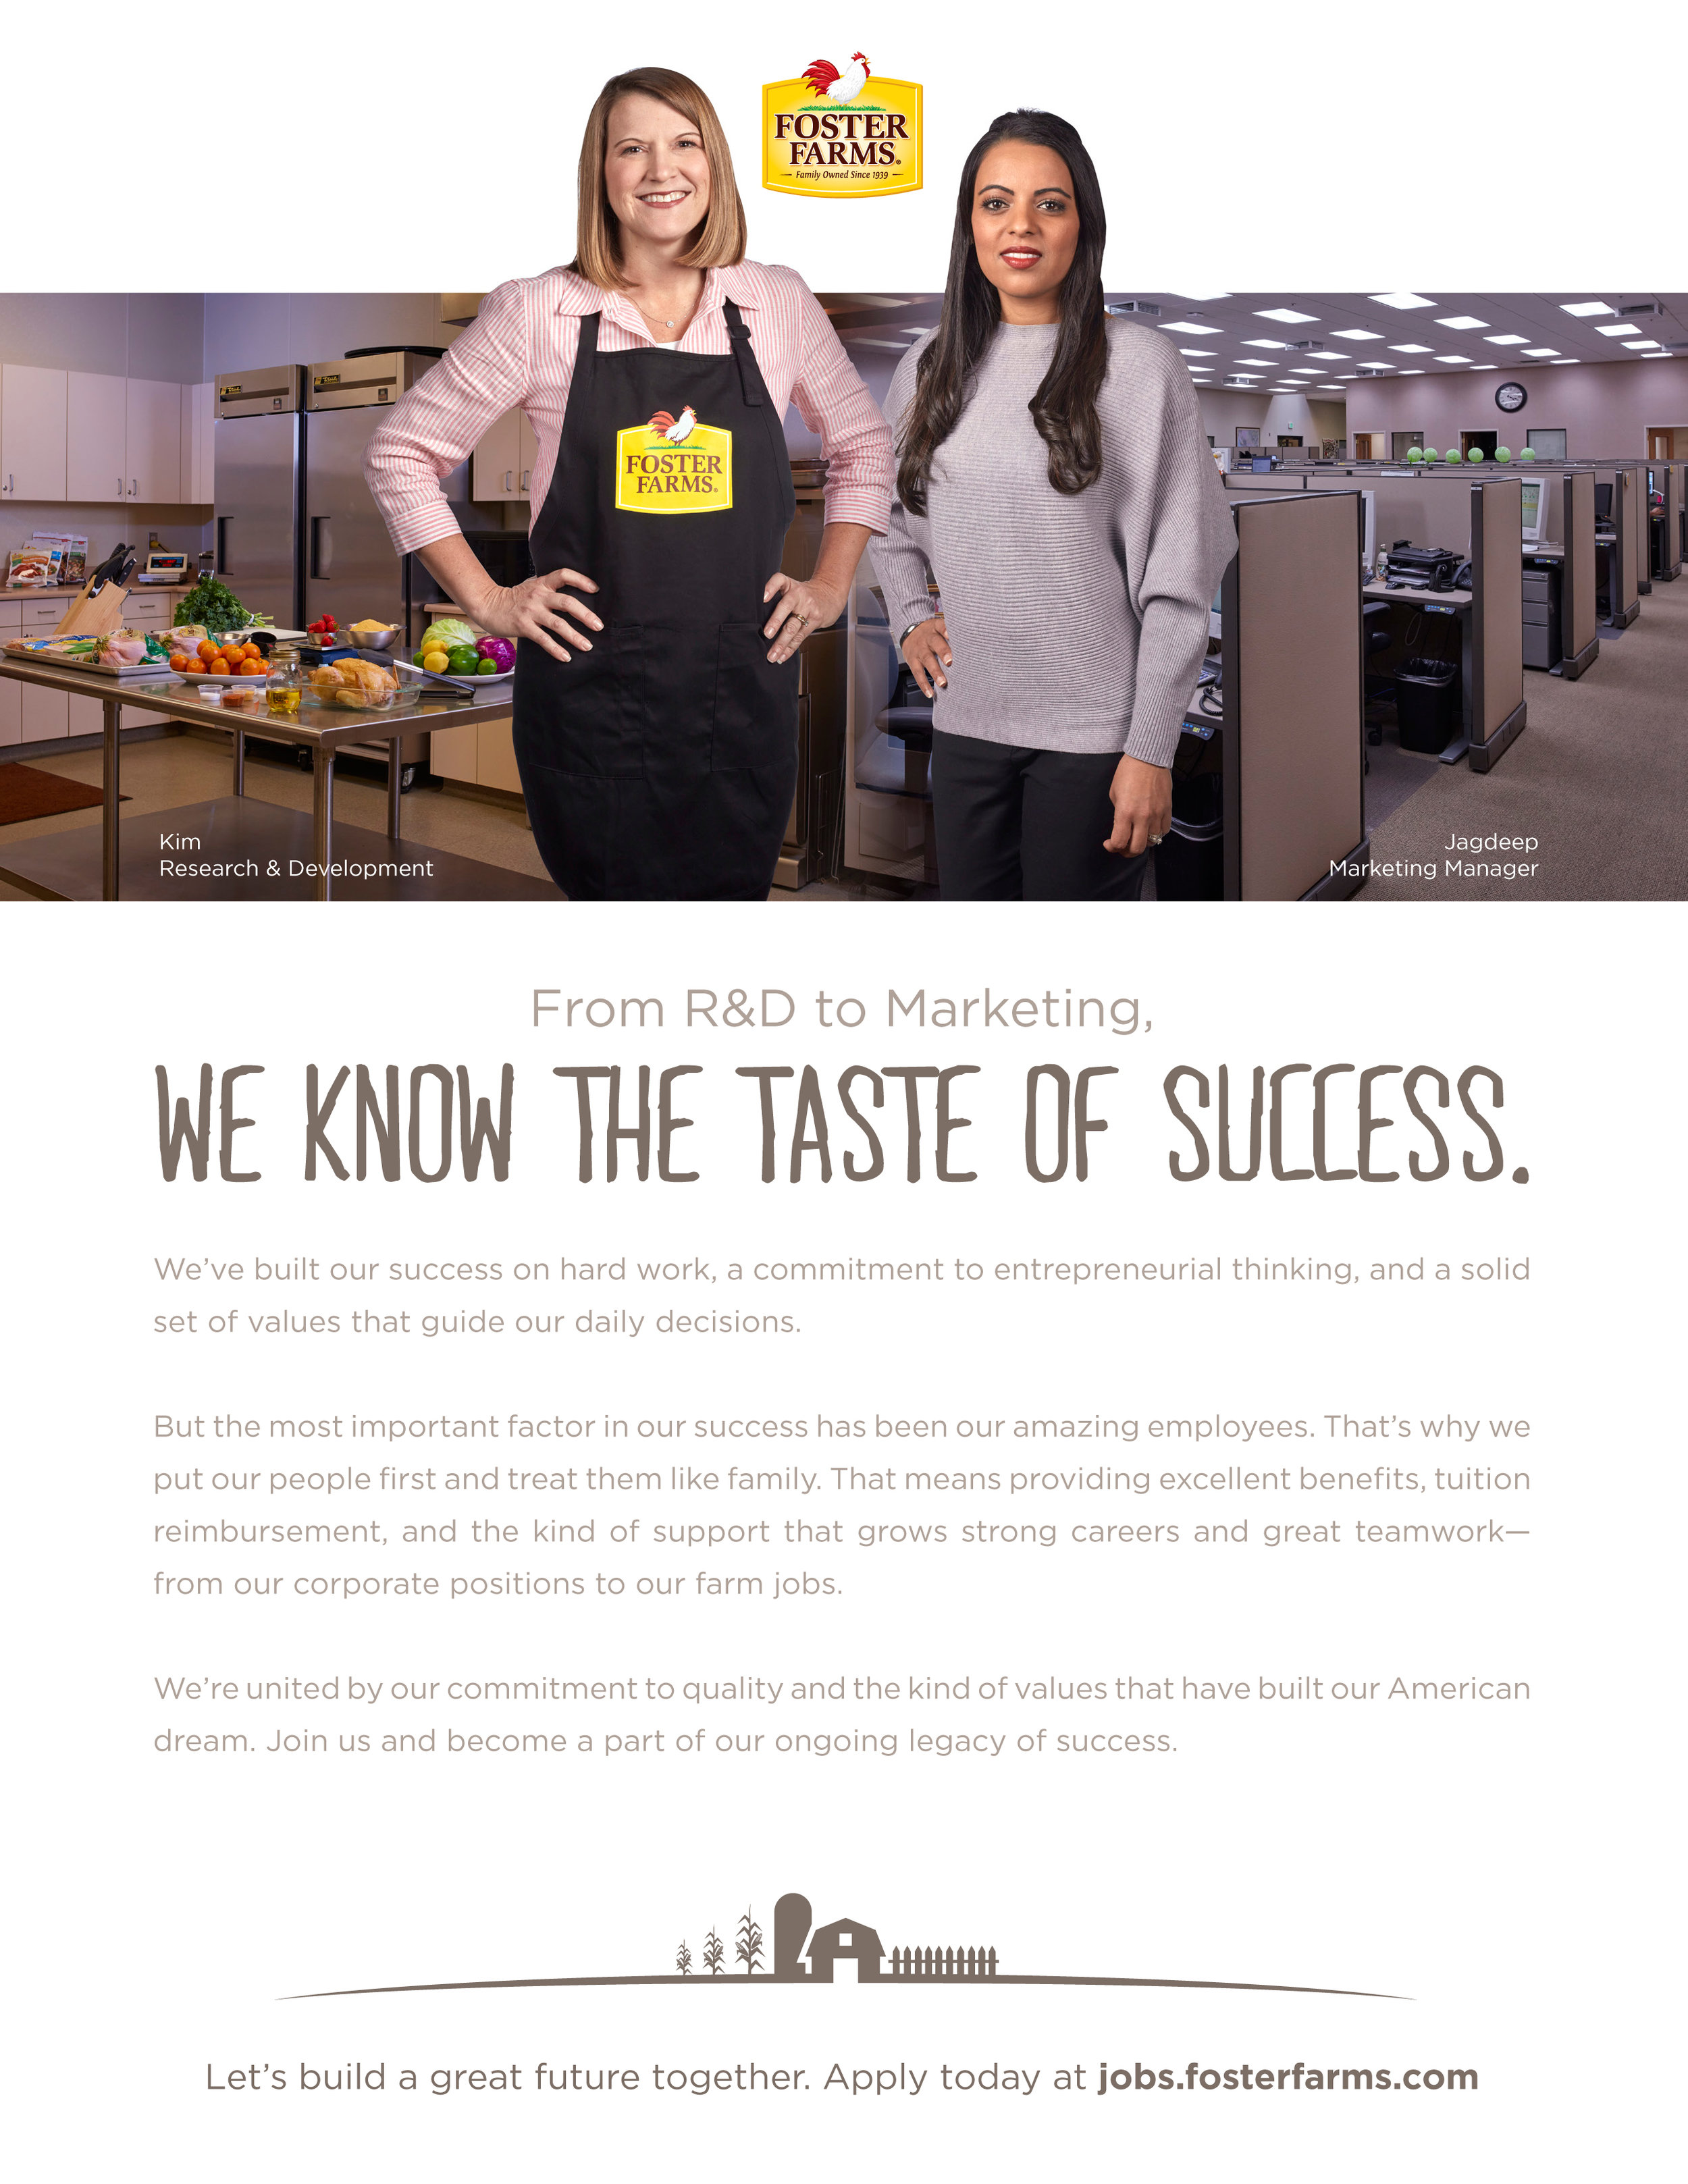 Foster Farms Brand Marketing and Design